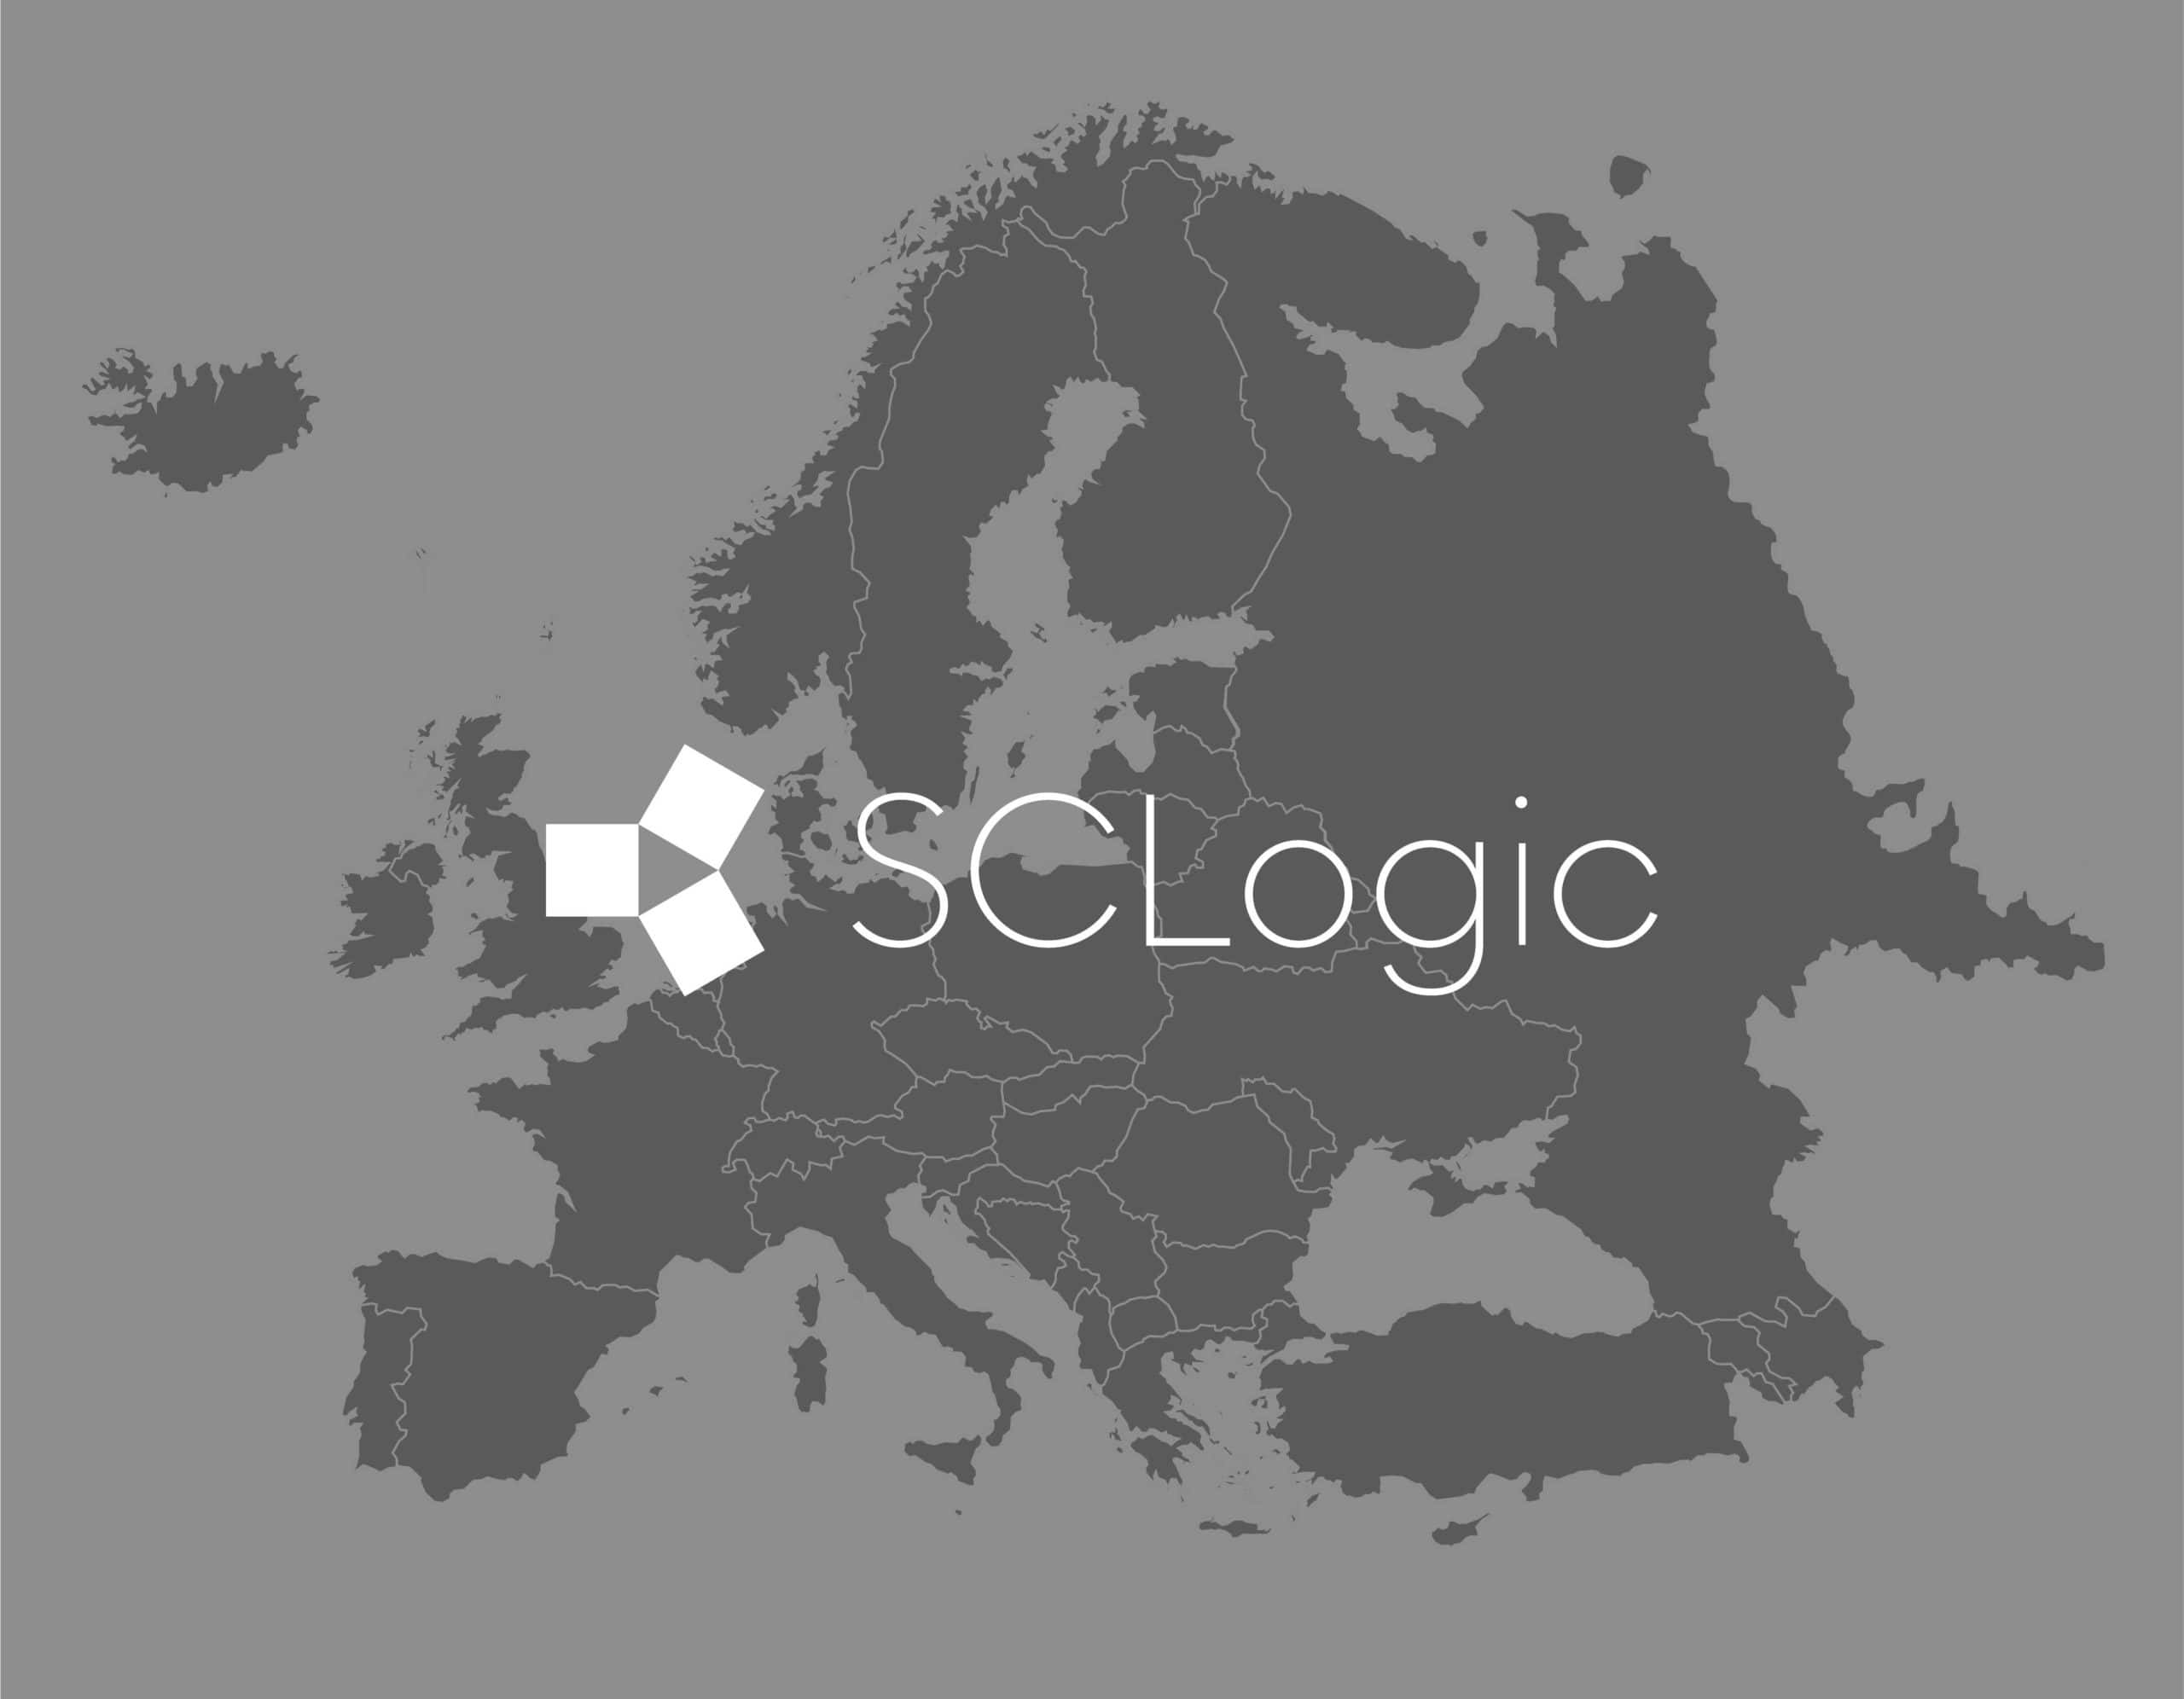 Grayscale logo of SCLogic over Europe, referencing expansion to Sweden and Denmark.